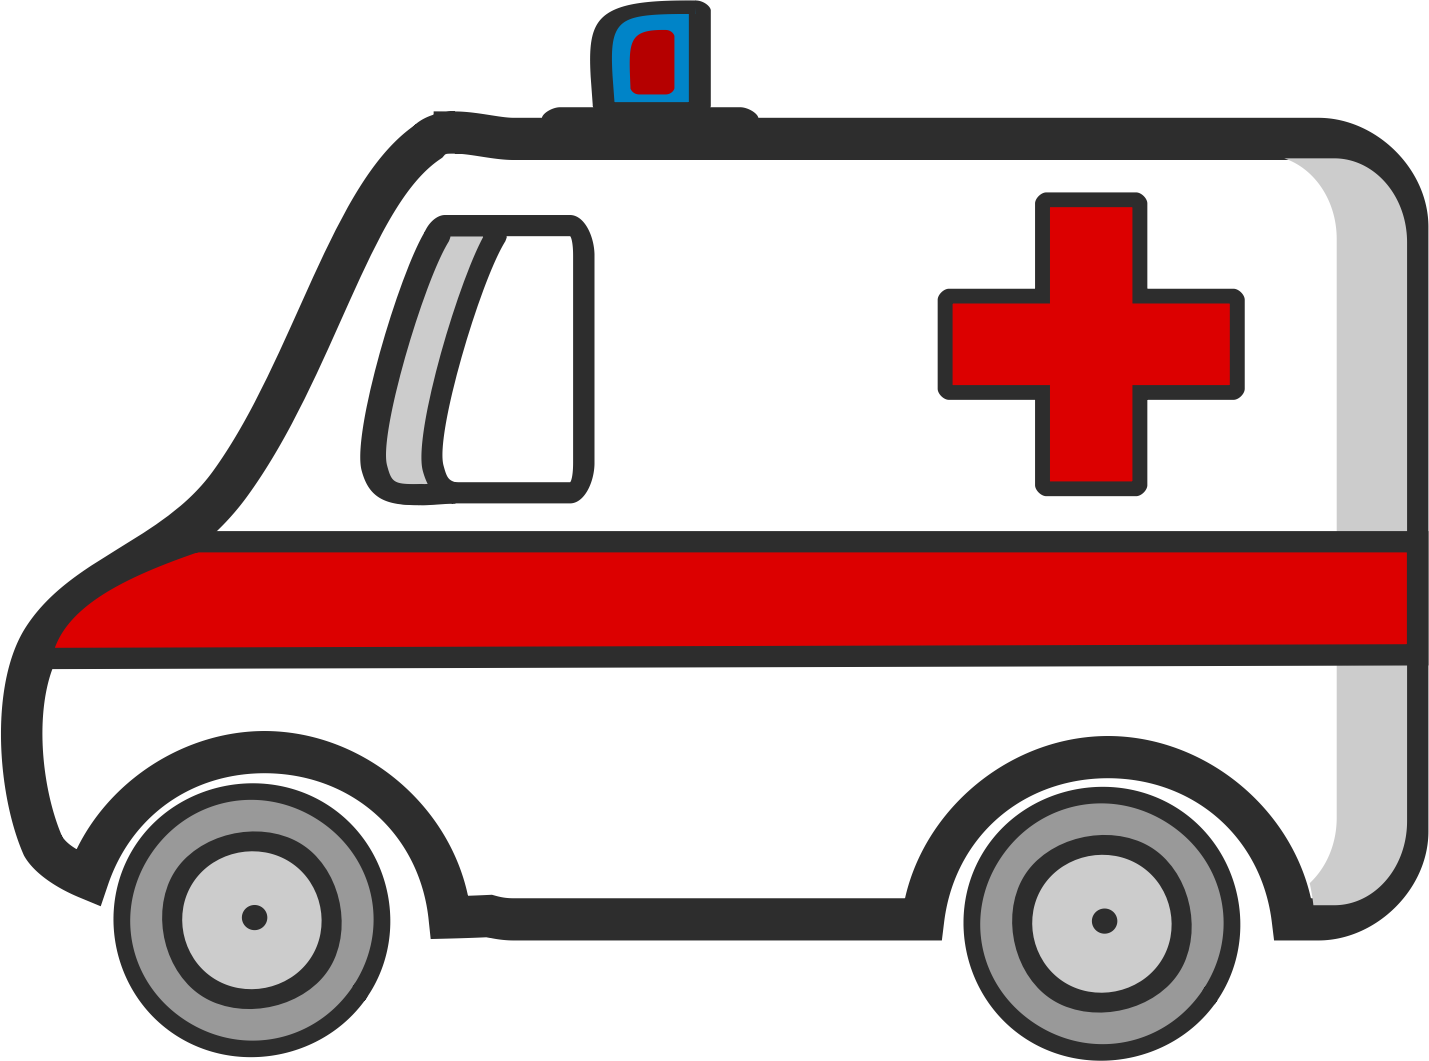 Ambulance / Emergency Medical Services (EMS) by jonathan357